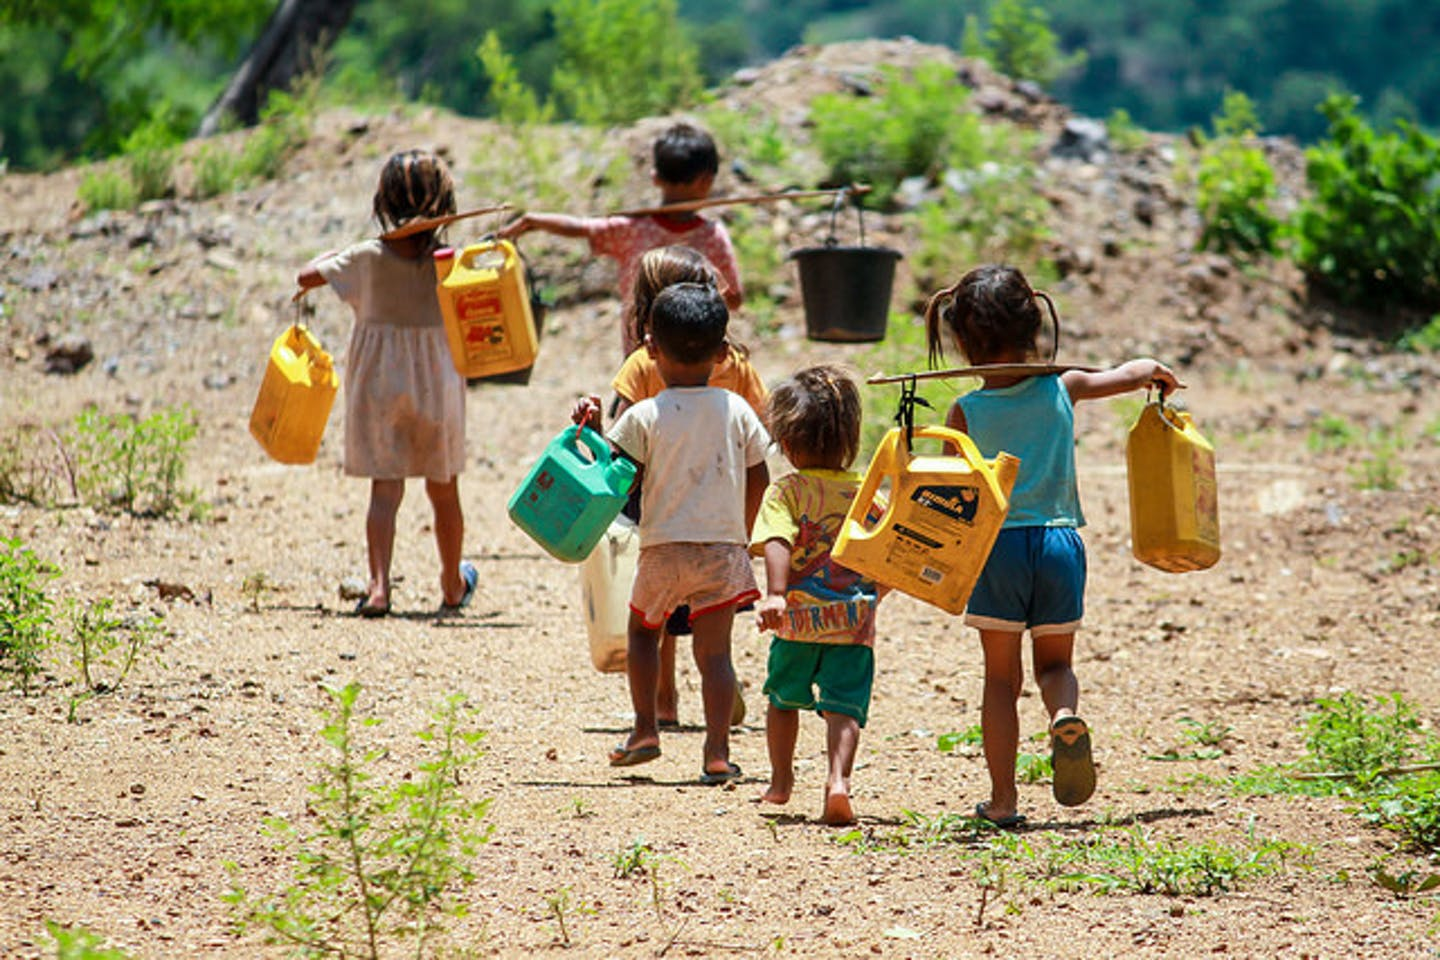 children carry gallons to fetch water from a river